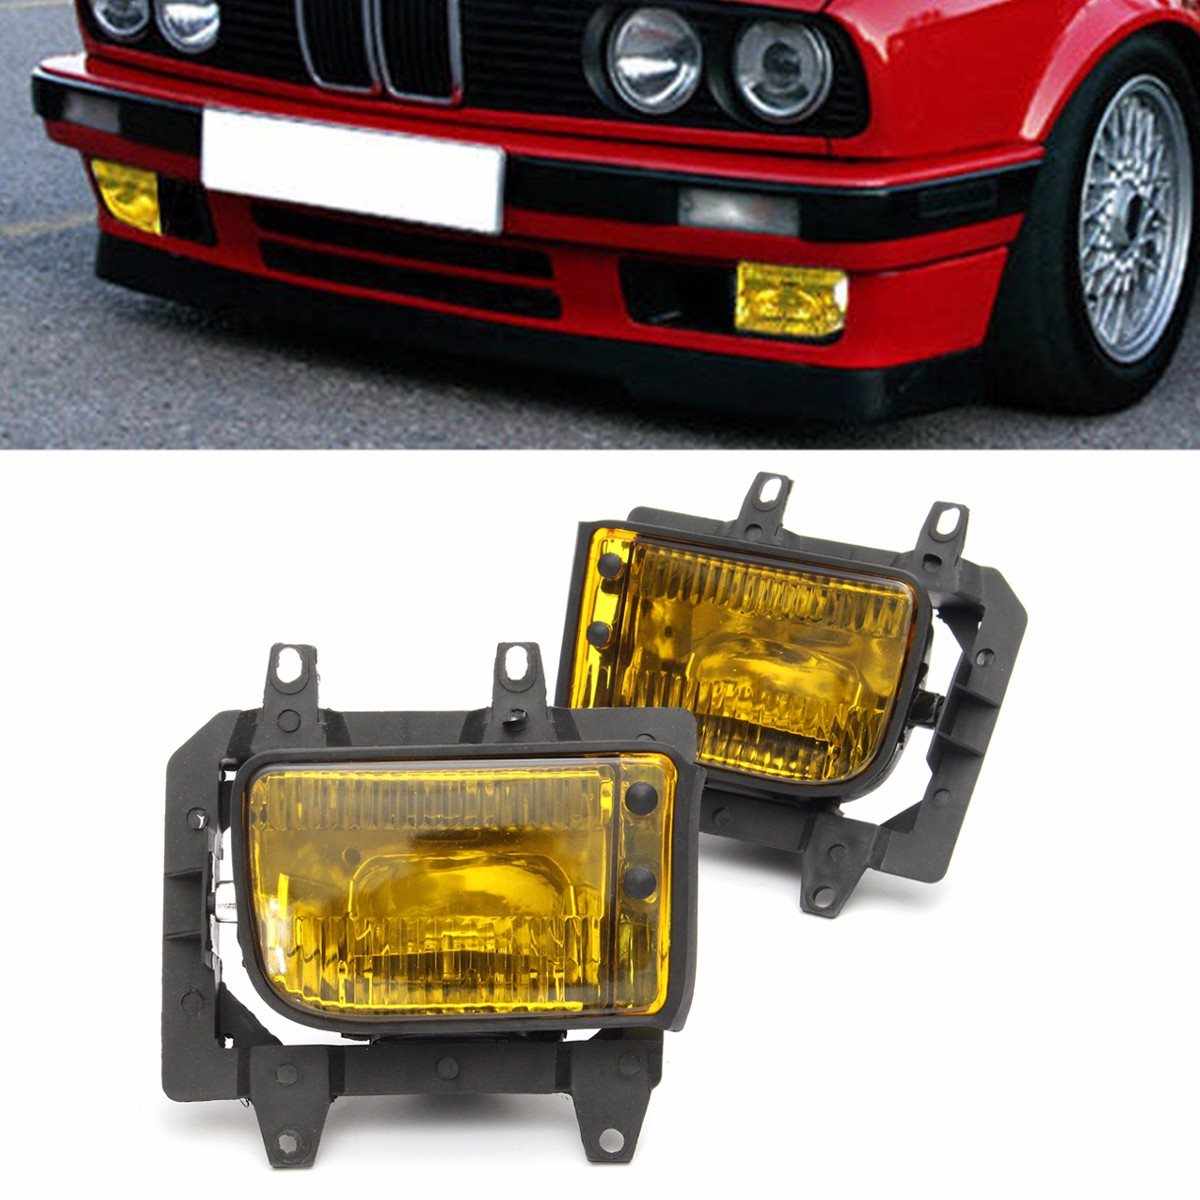 1 Pair Front Right Left Bumper Fog Lights Yellow Lens For BMW /E30 3-Series /Sedan 1985 - 1993 Random Color epman universal black 3 76mm polished aluminum fmic intercooler piping kit diy pipe l 450mm for bmw e30 3 series ep lgtj76 450